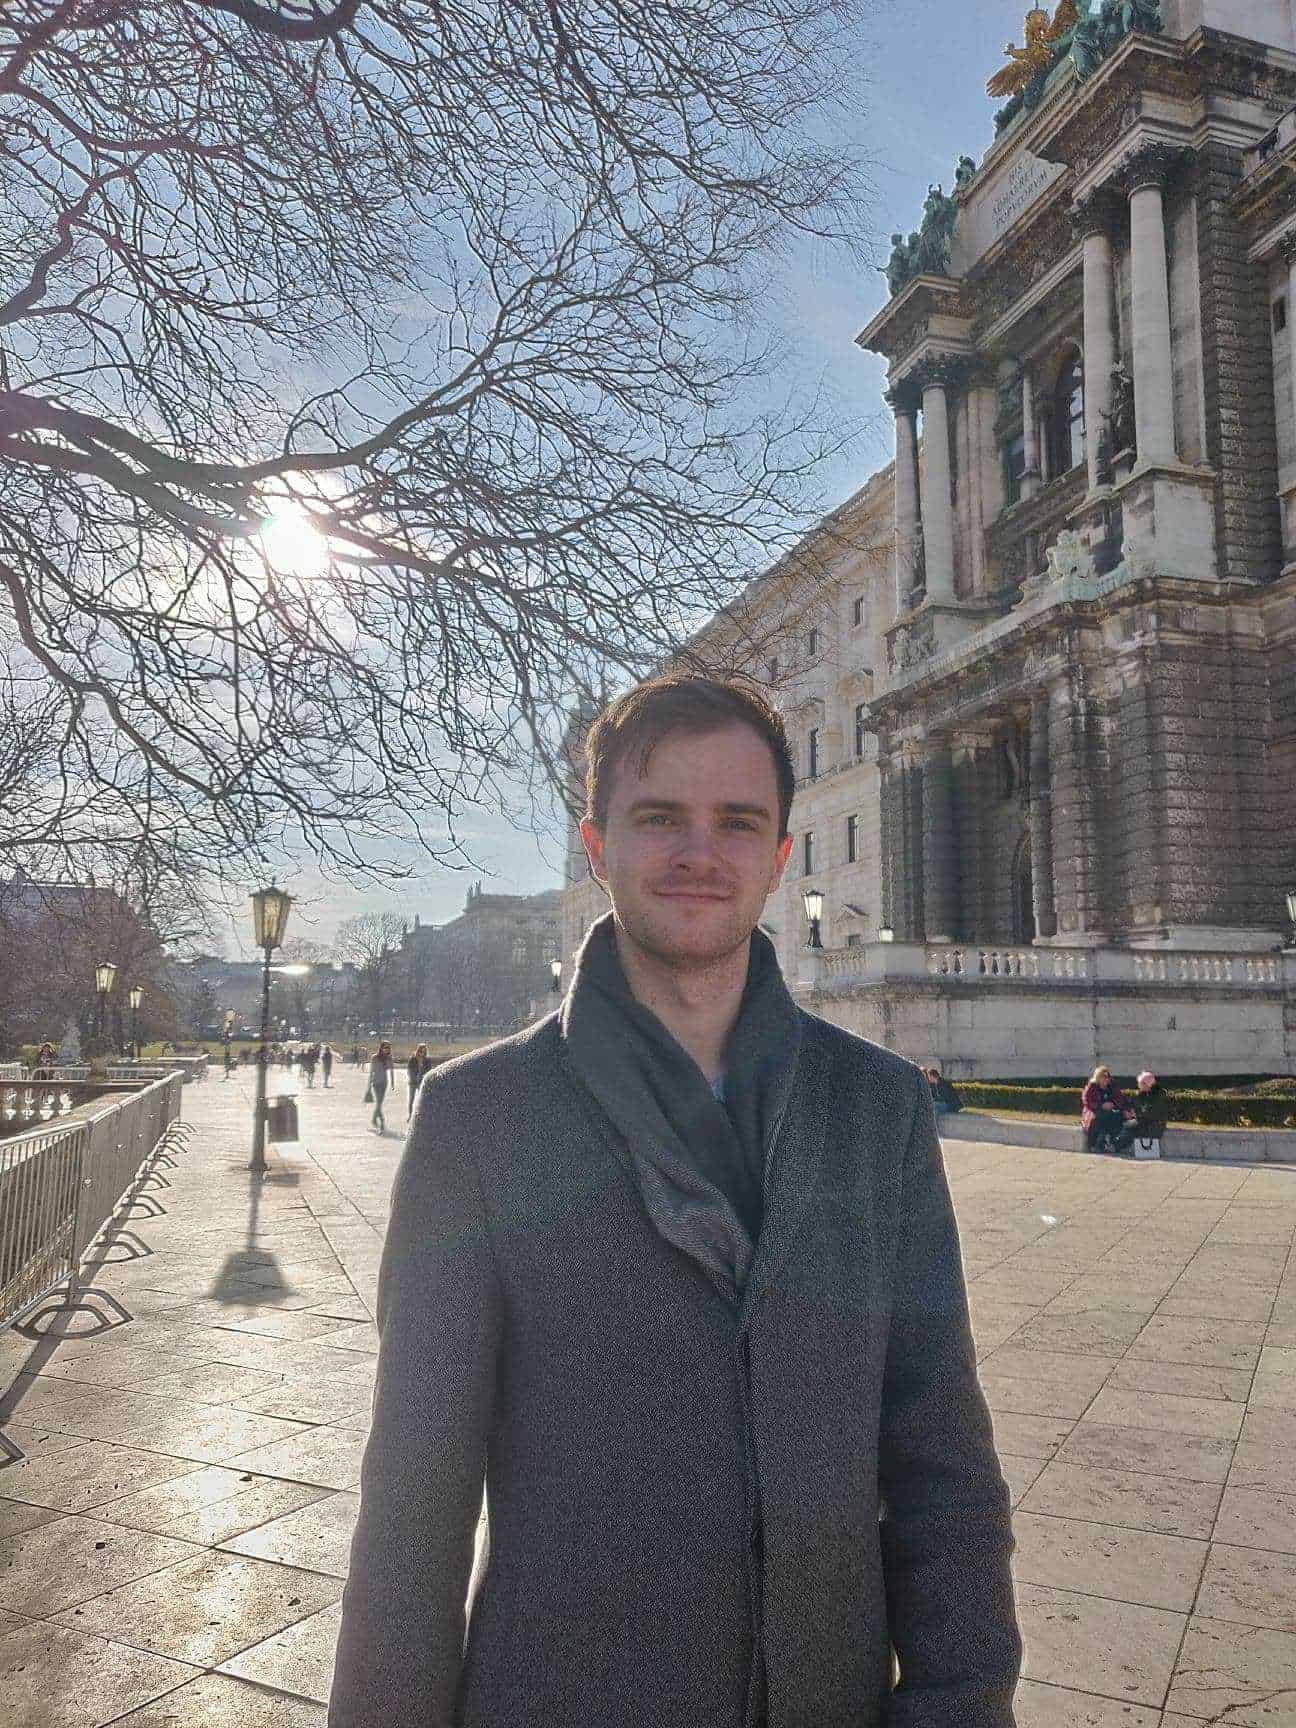 Ben is our product manager at Oxbridge interviews